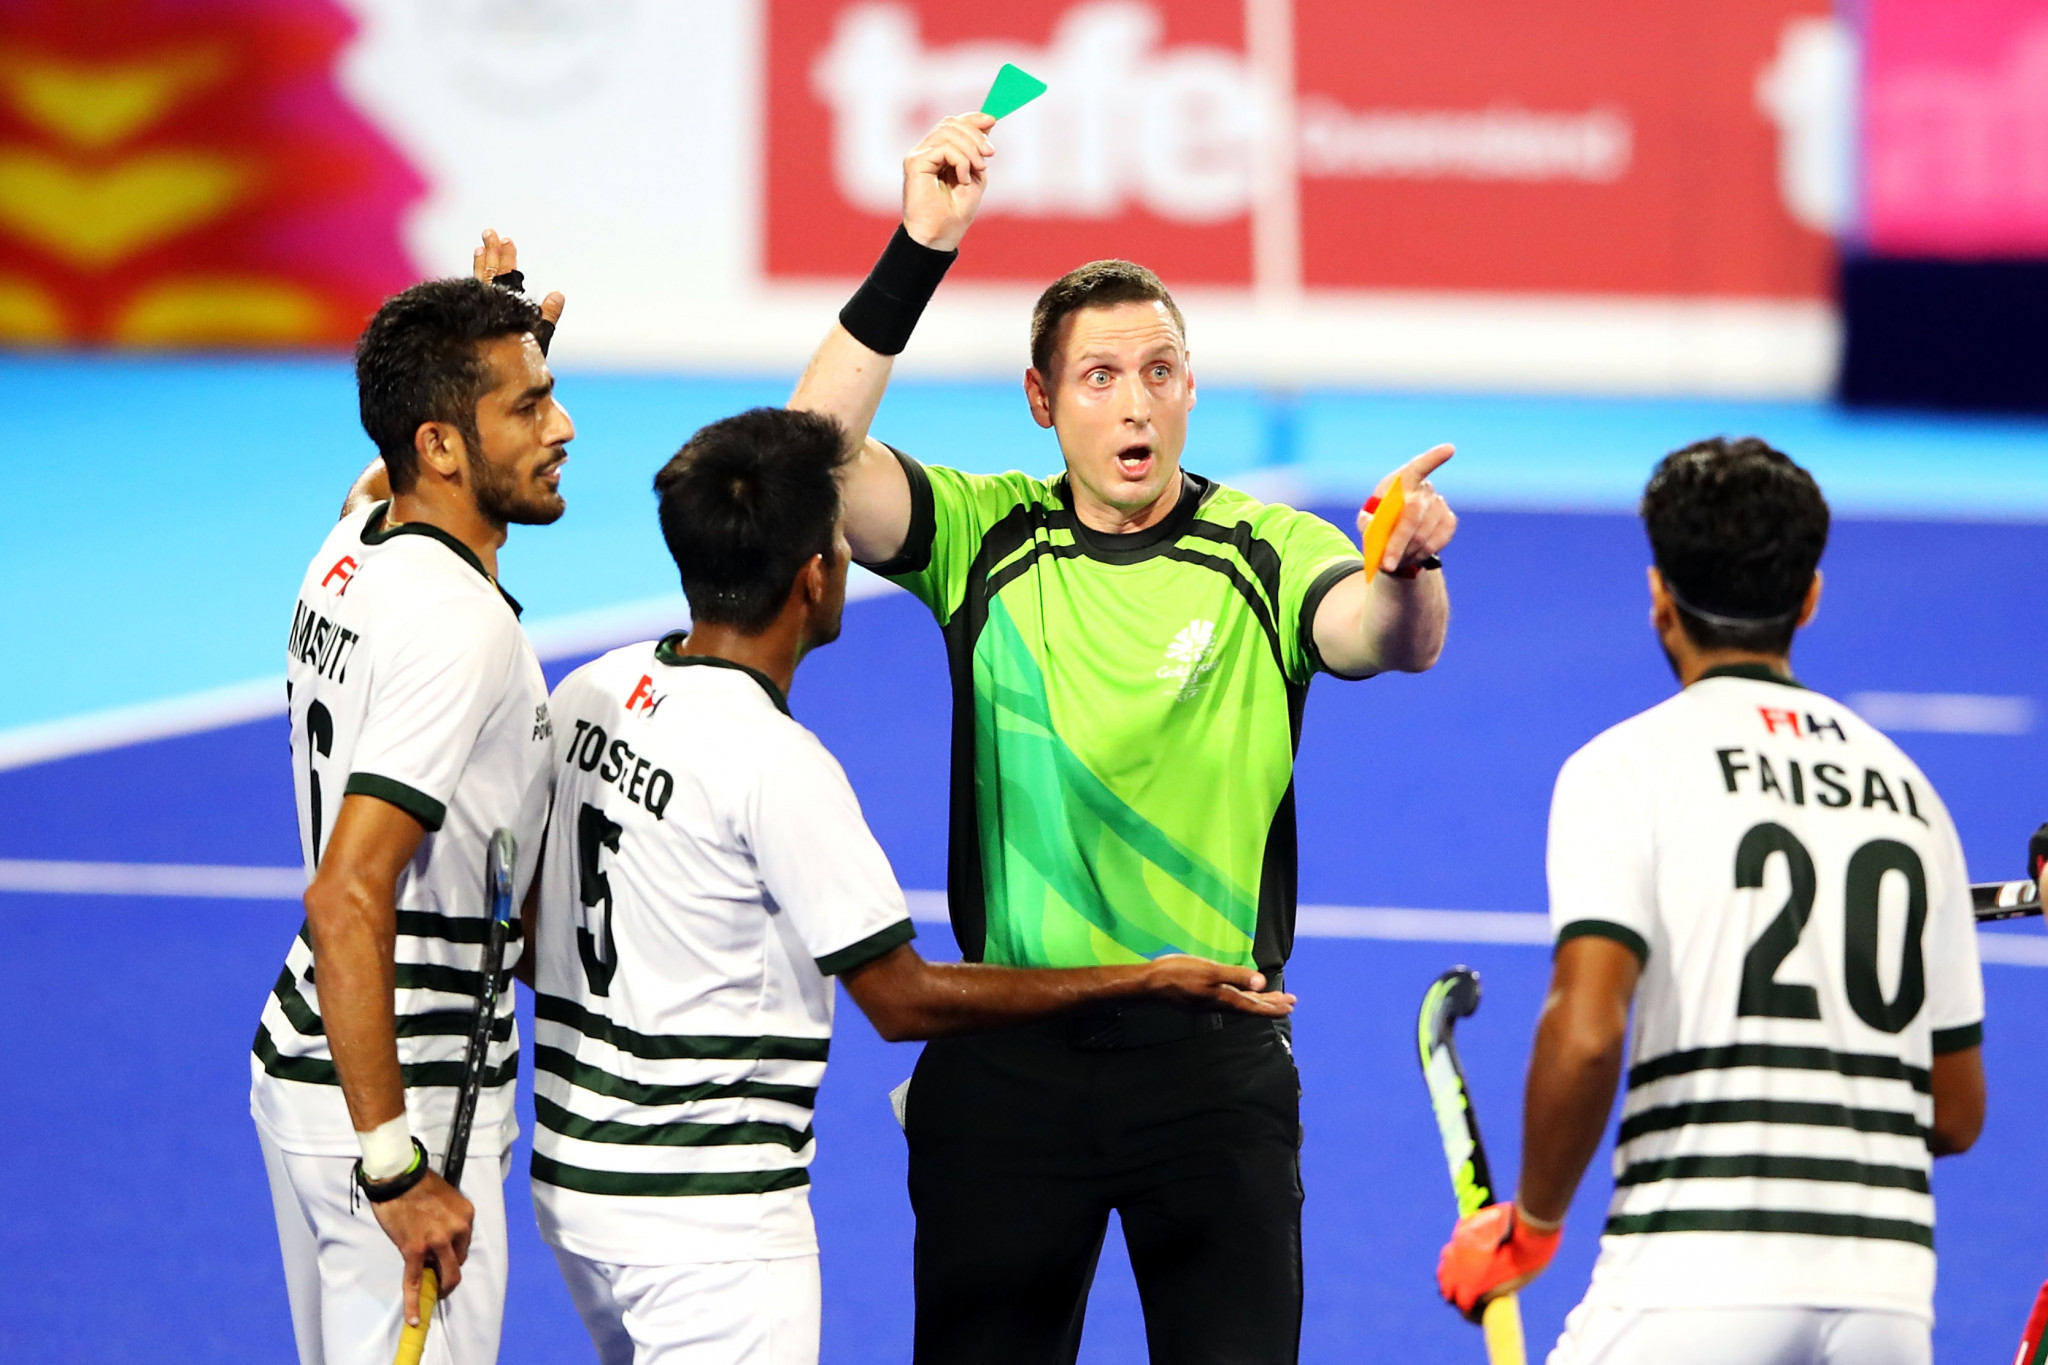 FIH launch development programme aimed at increasing standard of officiating